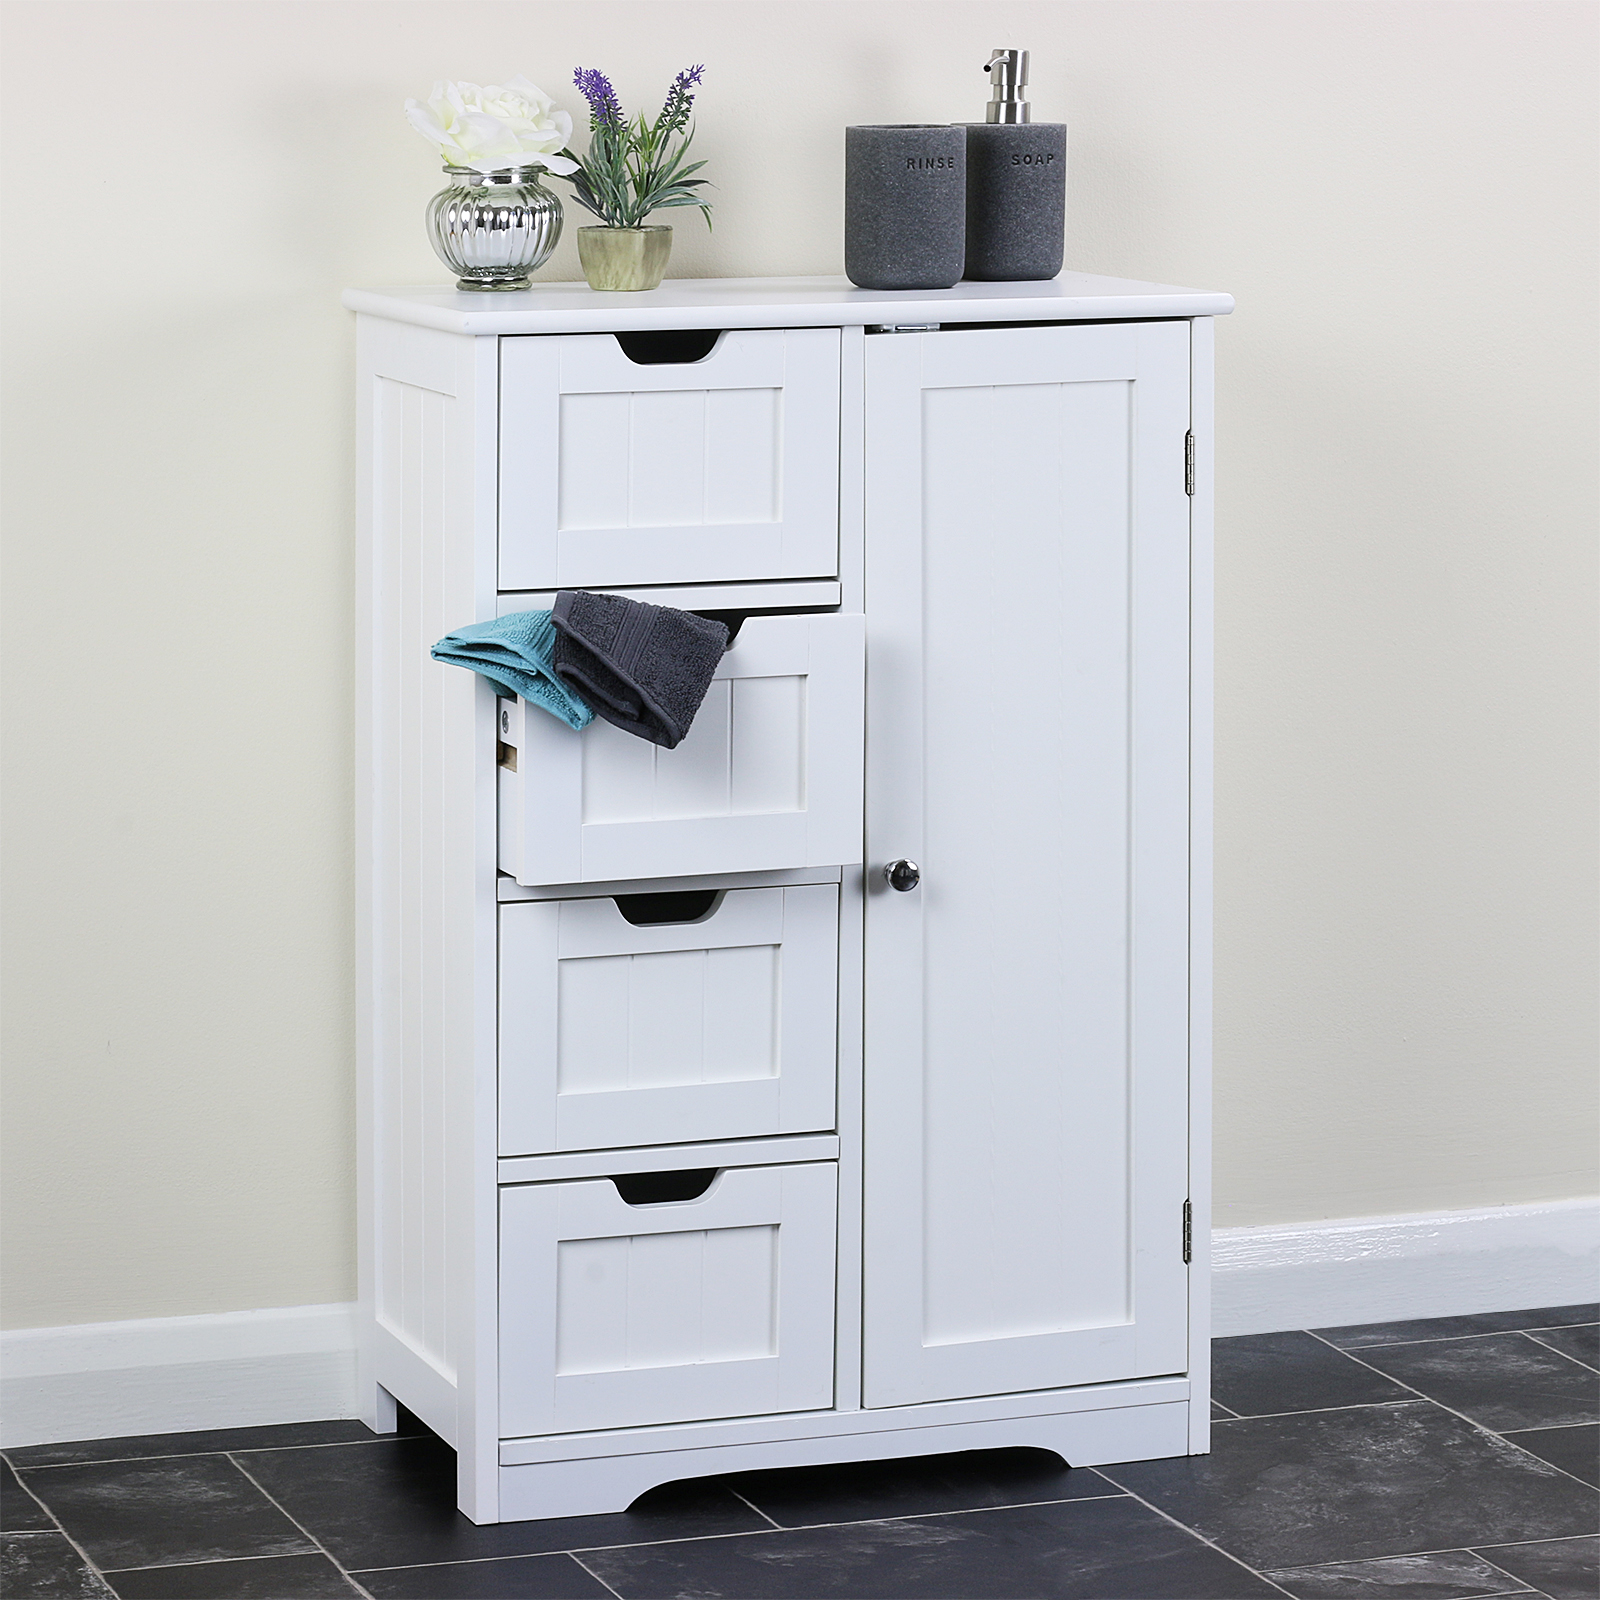 Bathroom Cupboard White Storage Cabinet Unit Bedroom Utility Toilet Room Drawers